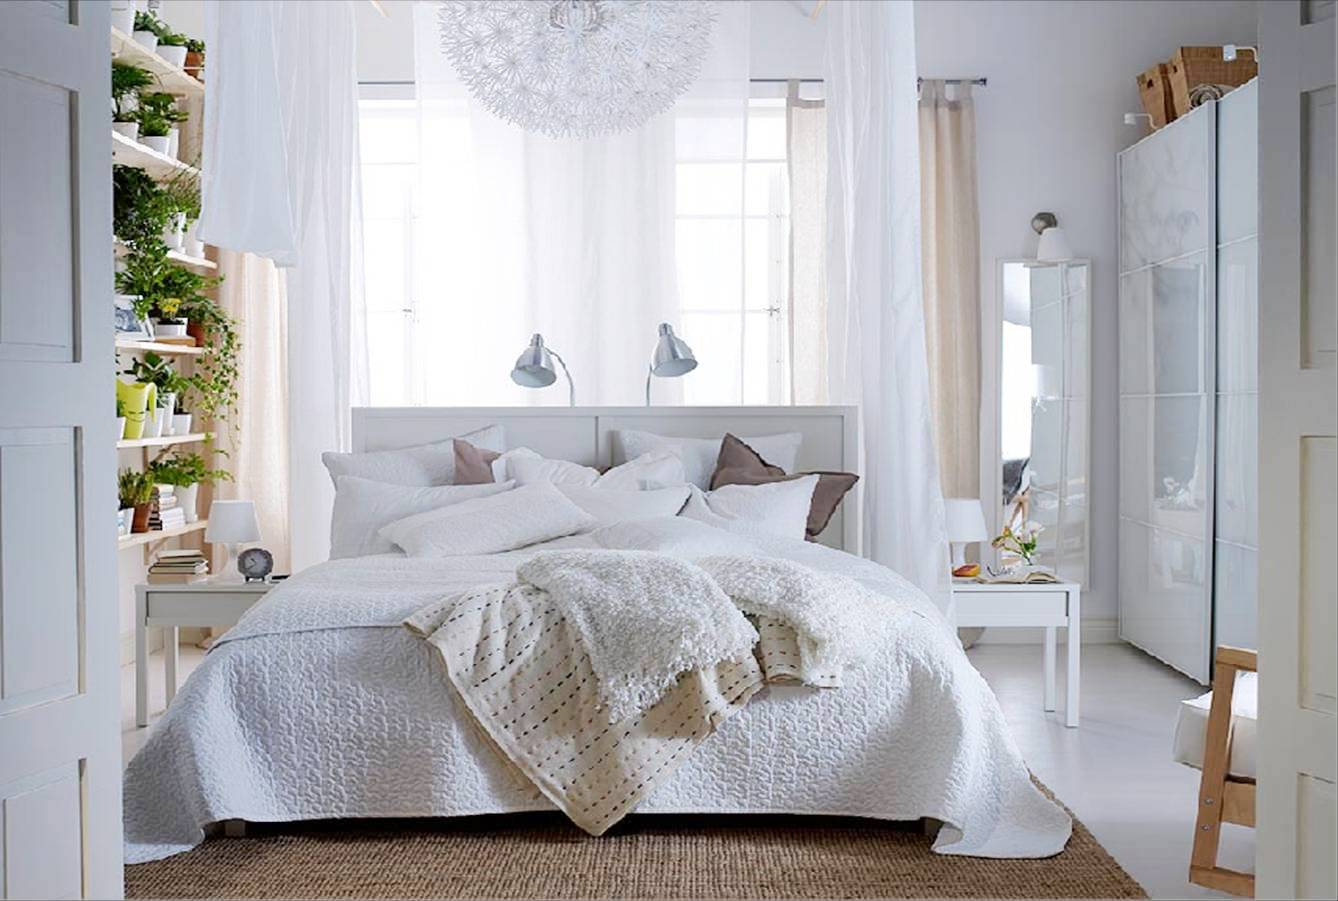 Bedroom Inspiration Ikea Collected Dandelion Lamp